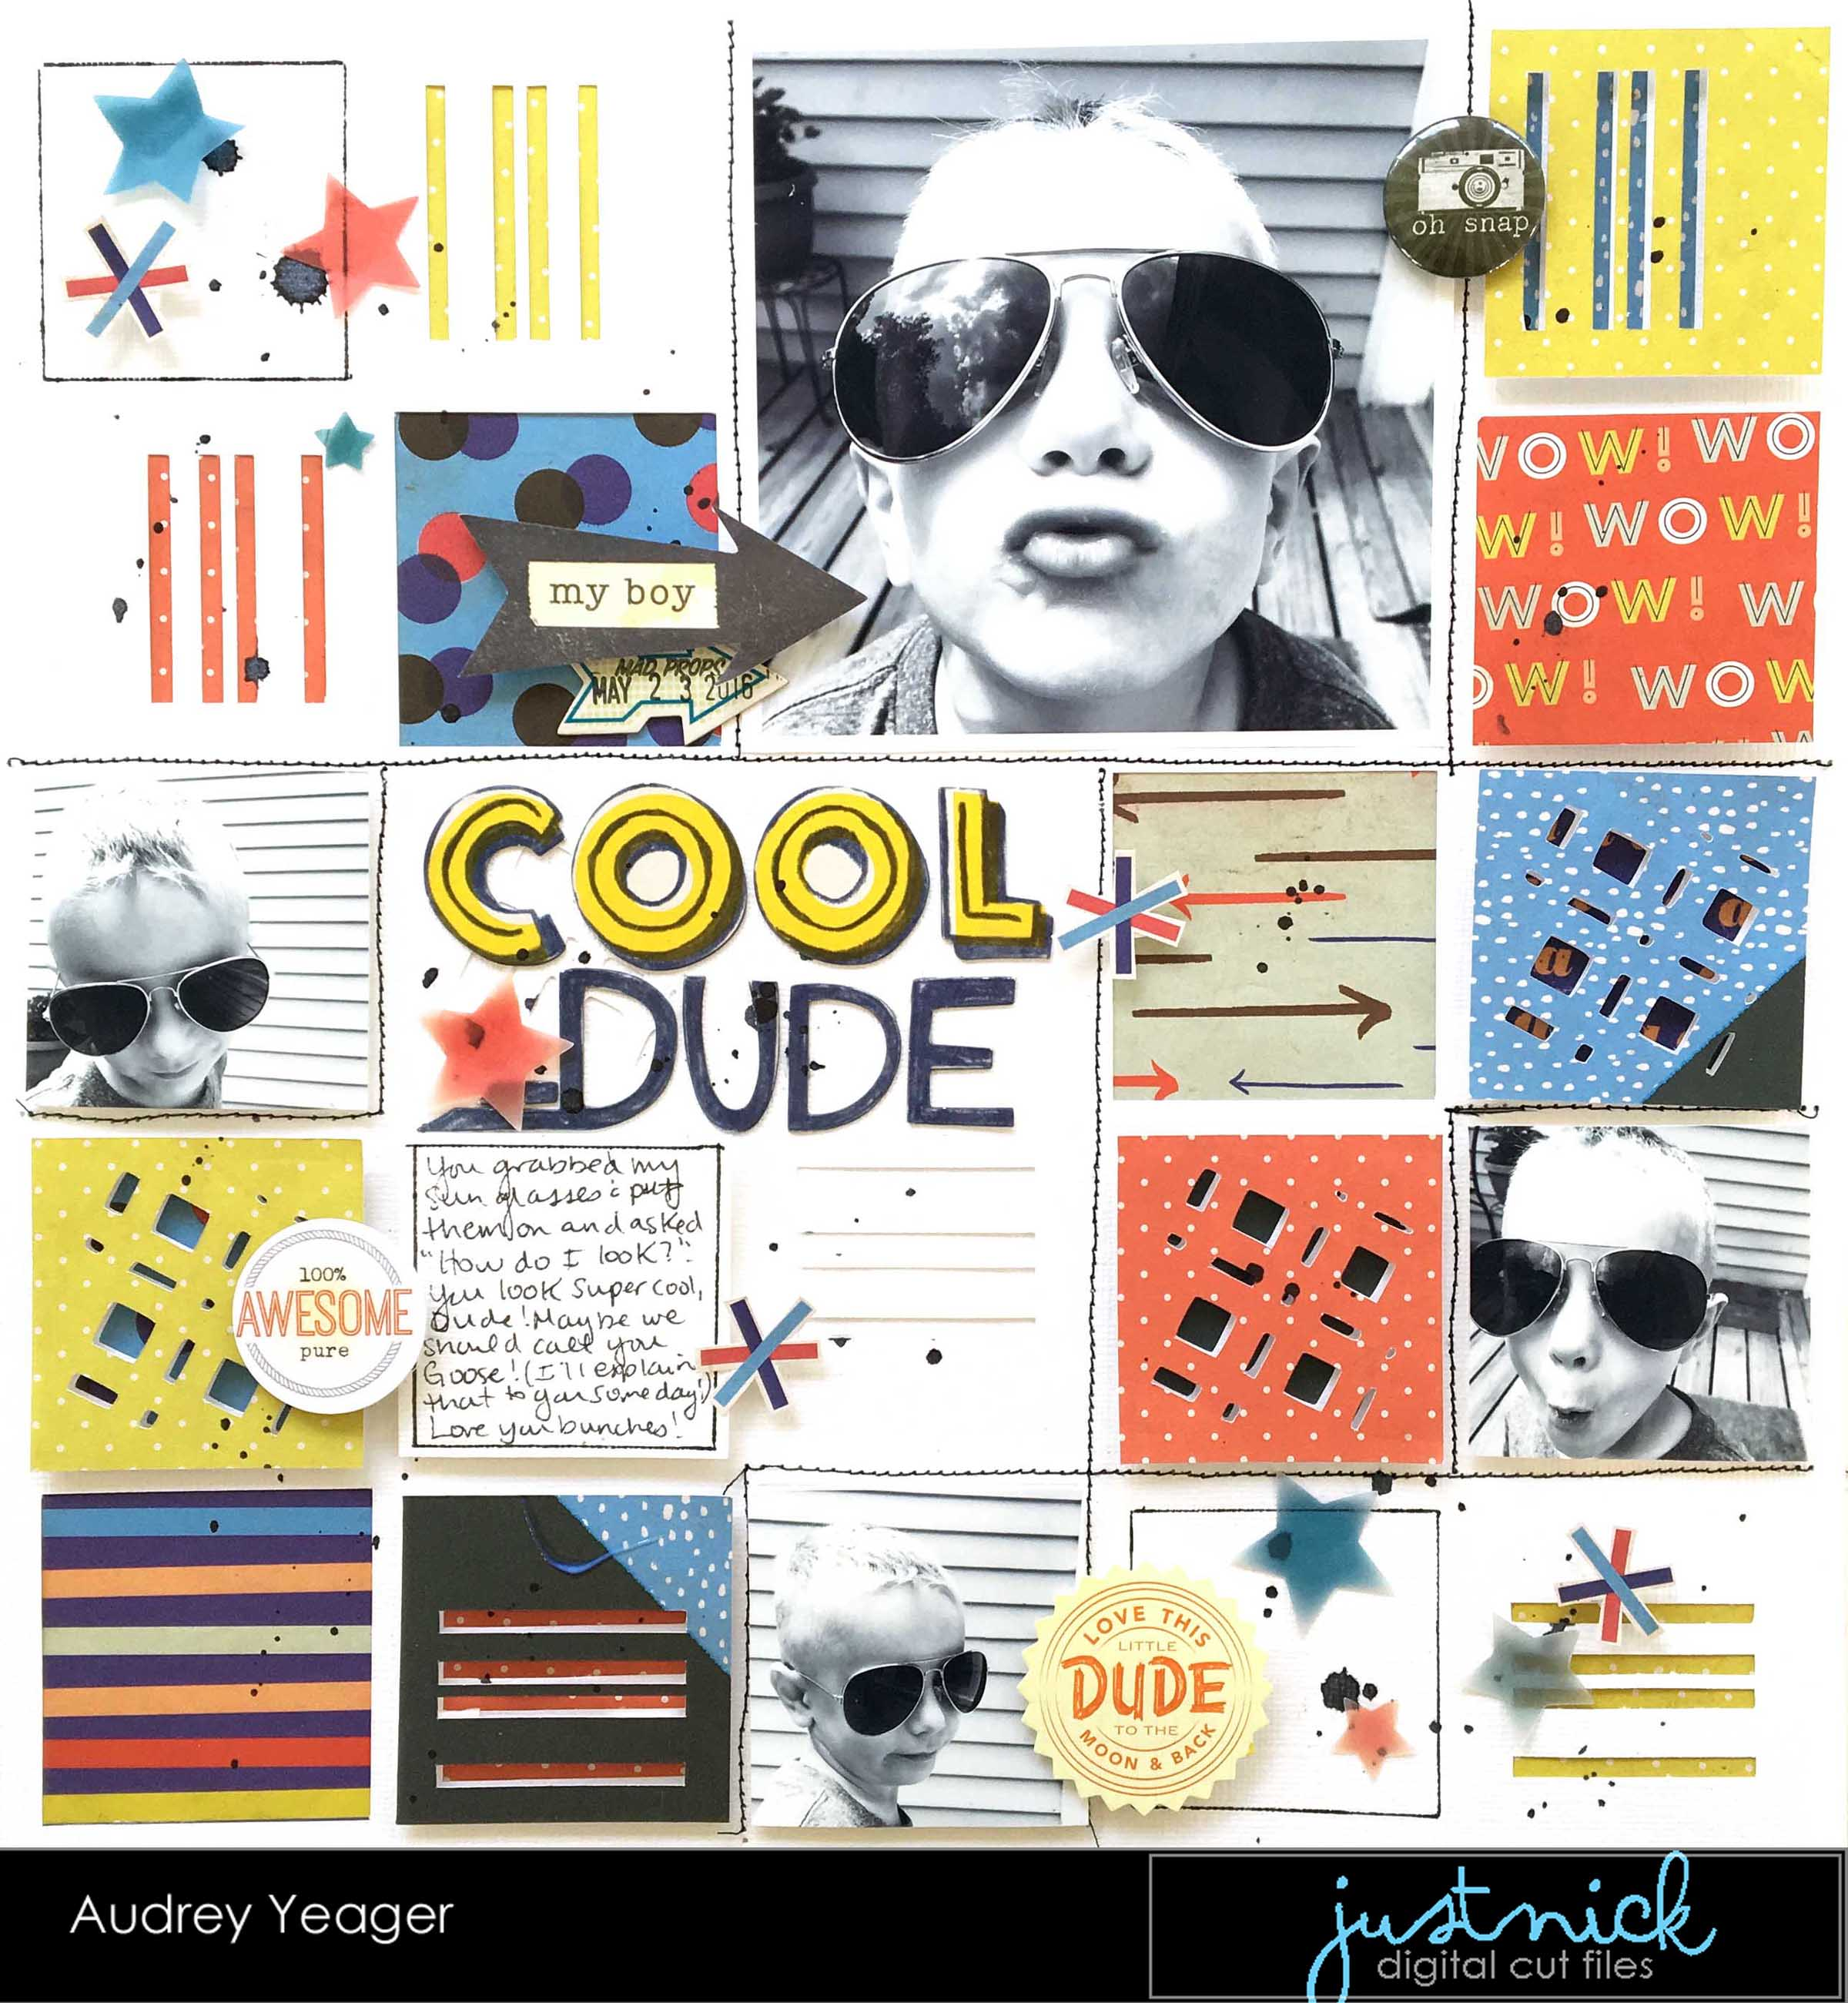 Cool Dude by Audrey Yeager